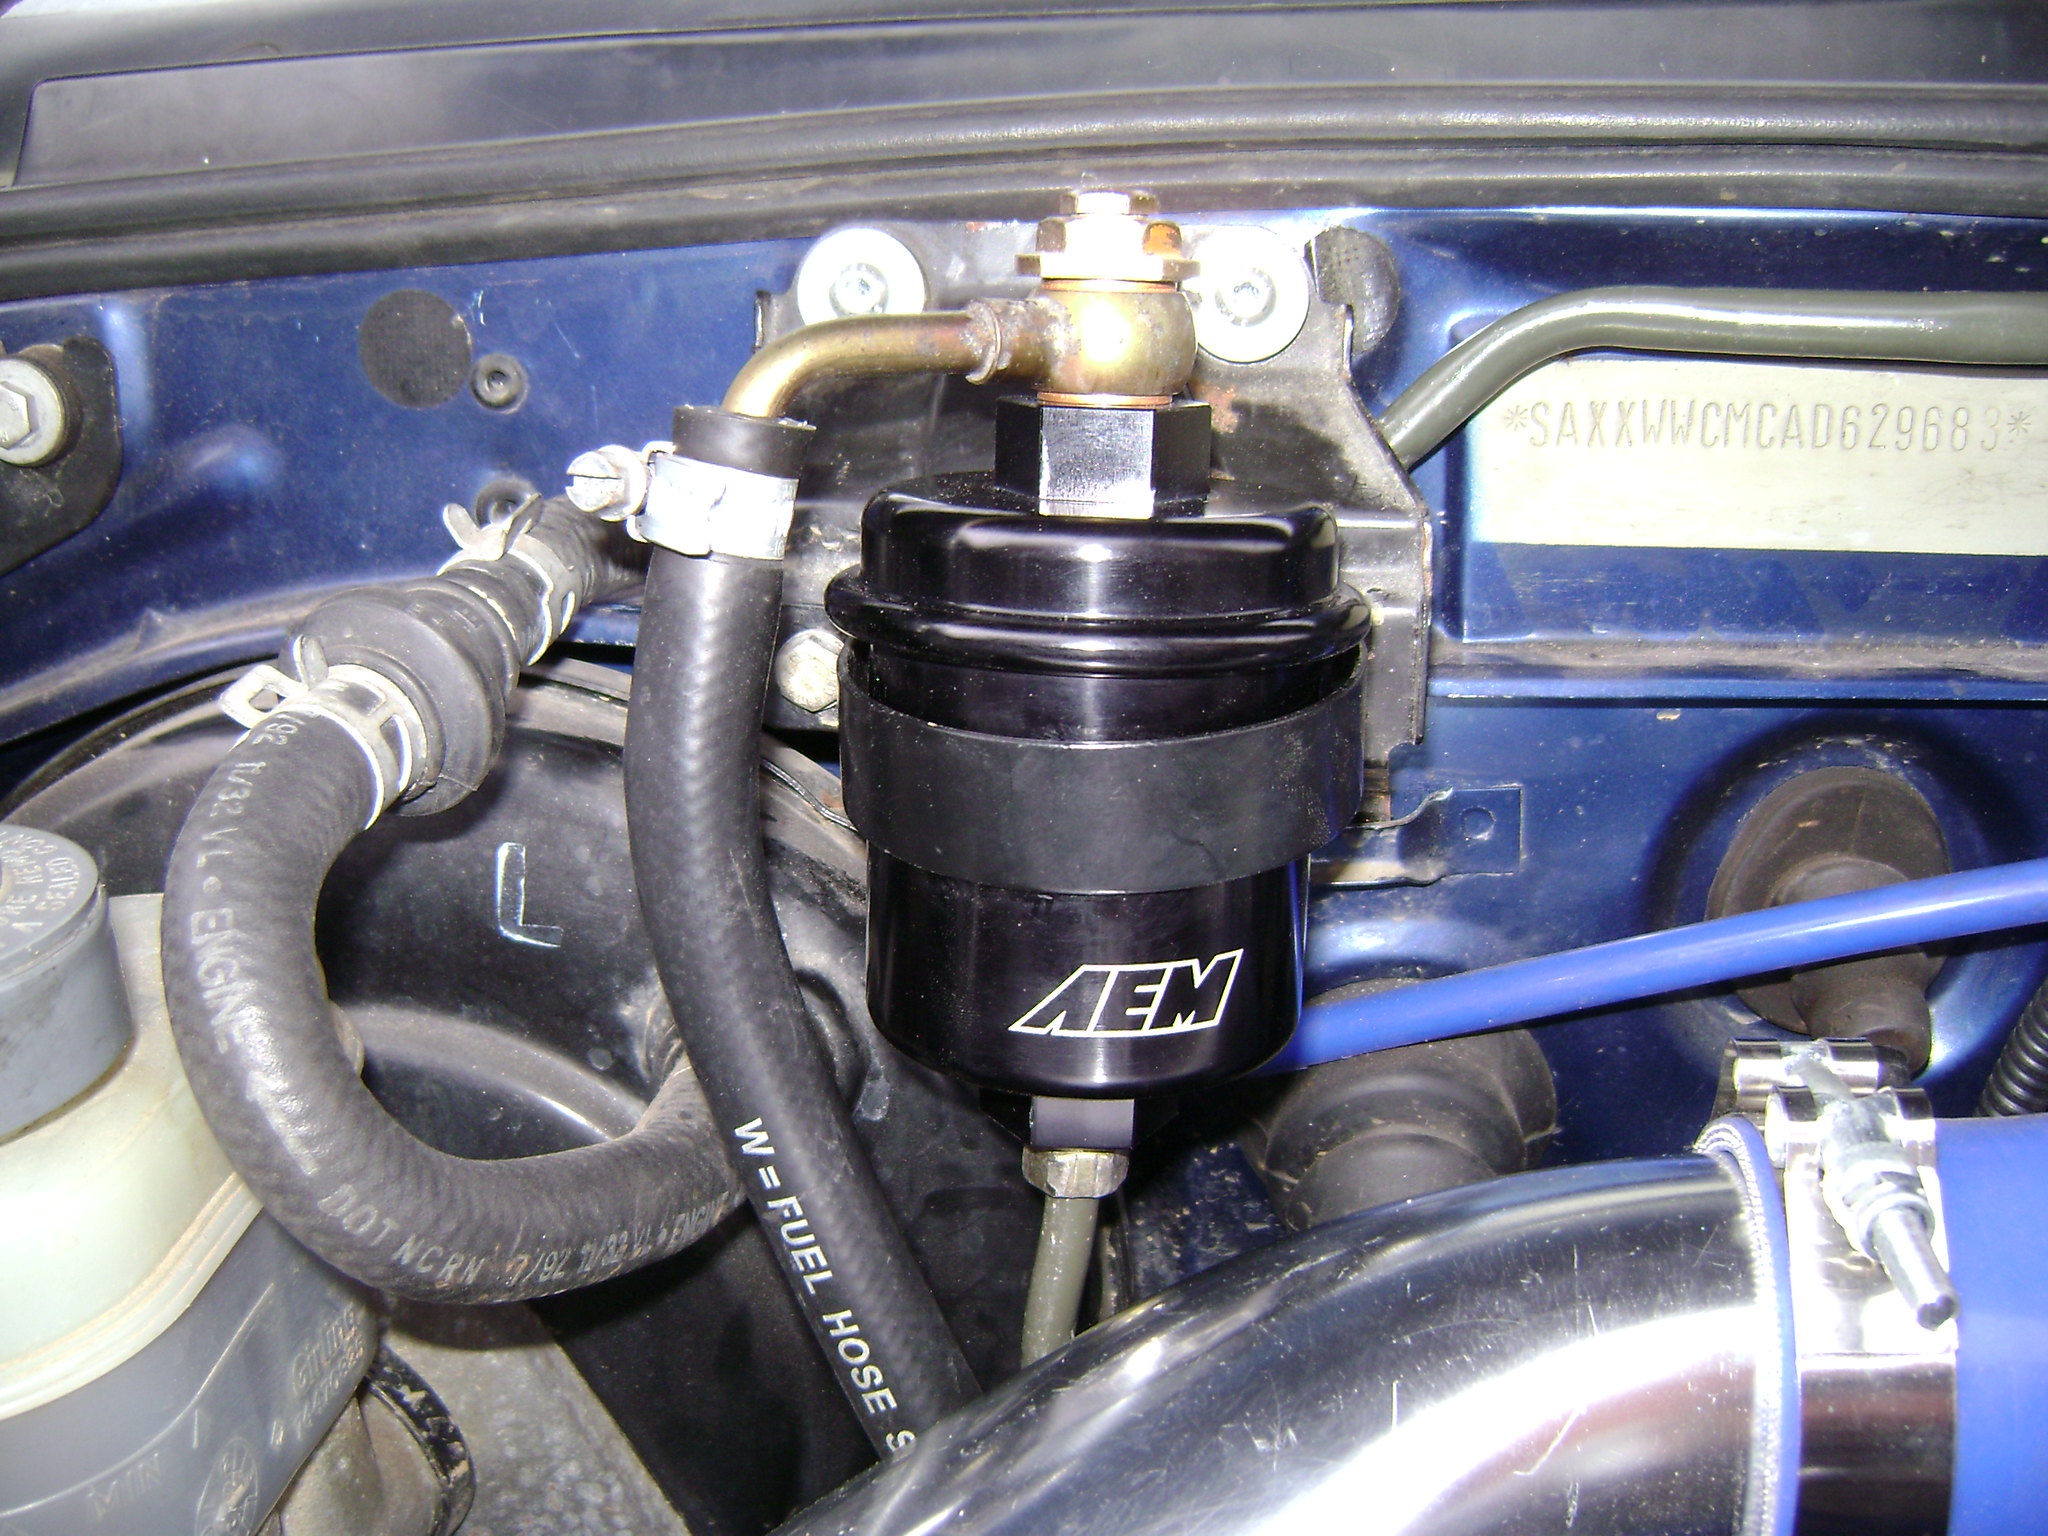 Aem Fuel Filter Wiring Diagram Jeep Cherokee Filters 1992 Rover Coupe D16z6 Turbo Project Finally Running Retro Rides 1999